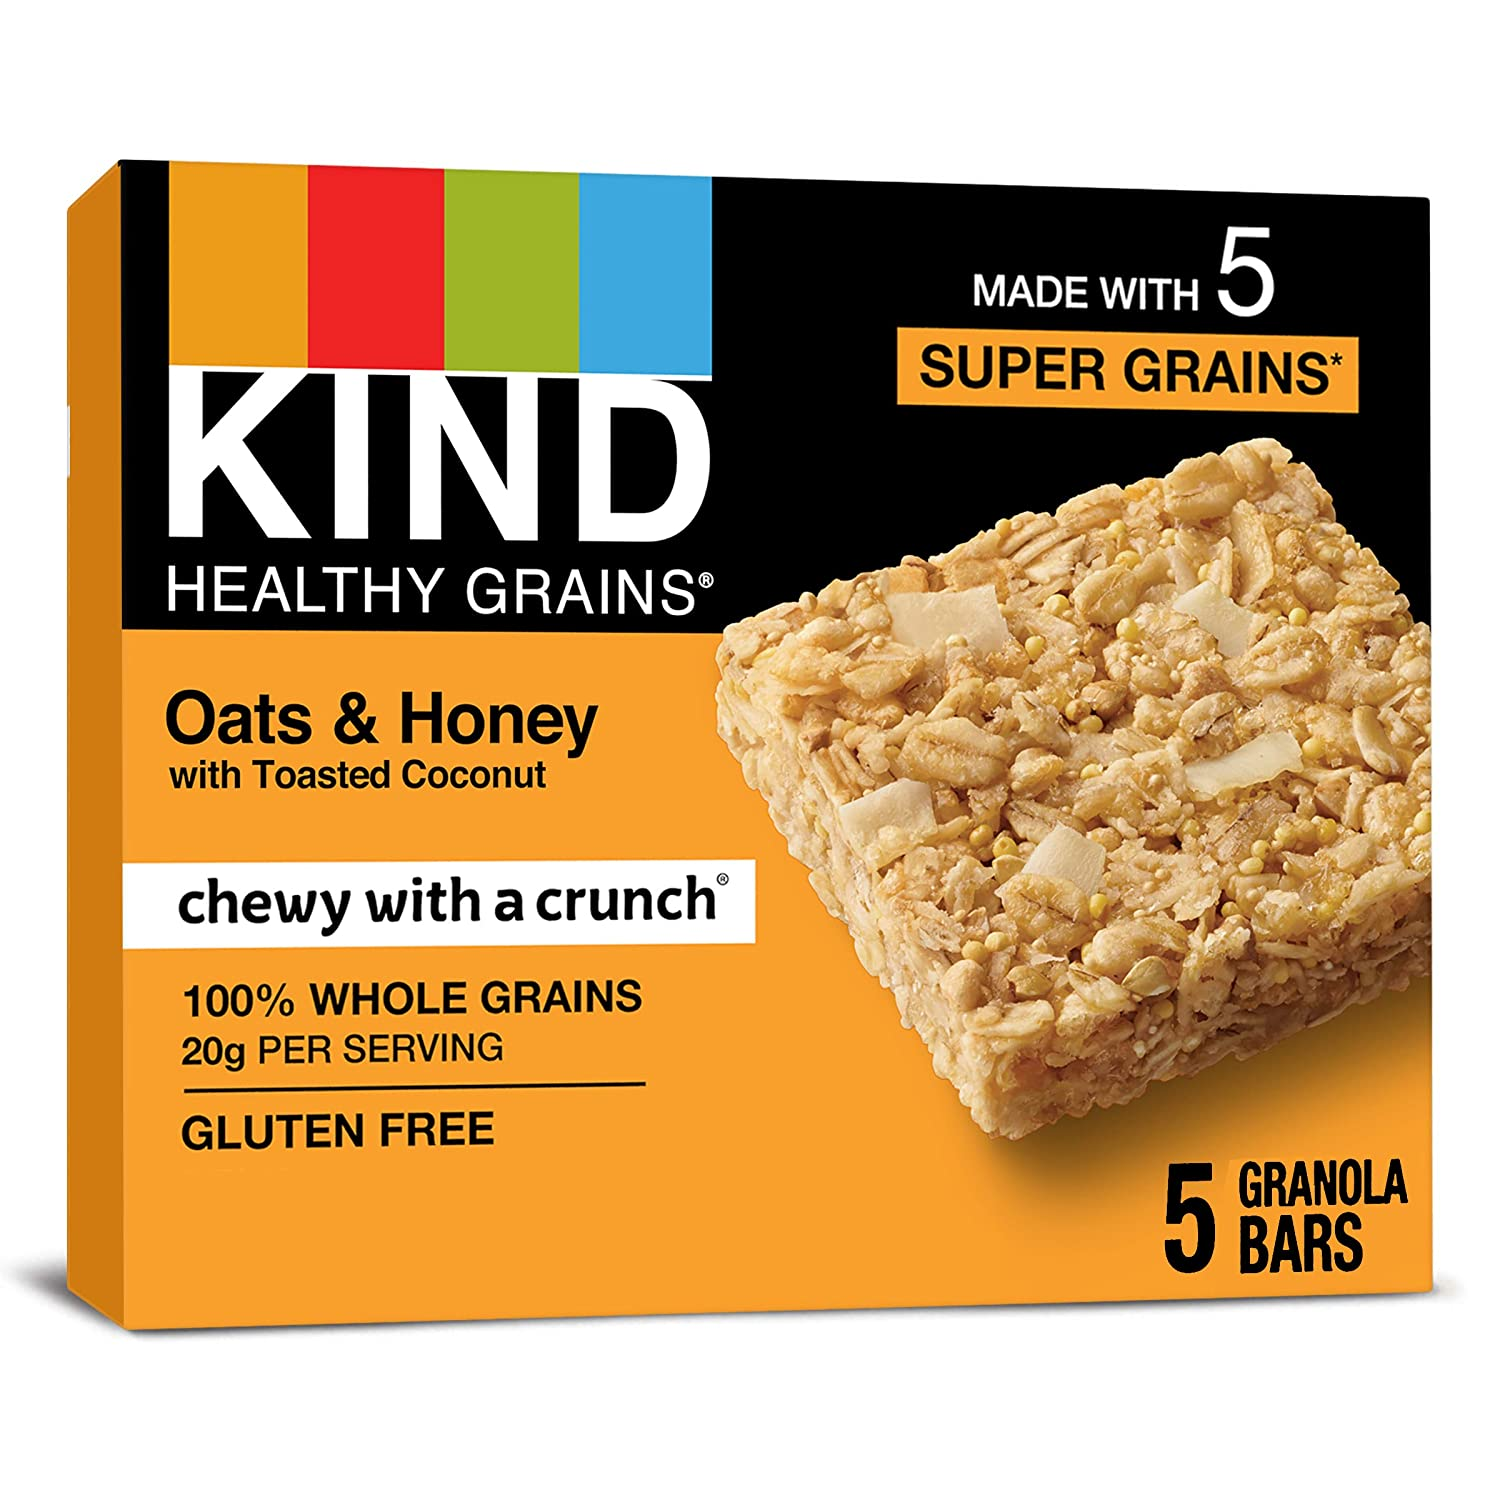 KIND Healthy Grains Phoenix Mall Bars Oats Coconut Toasted Glu In stock with Honey